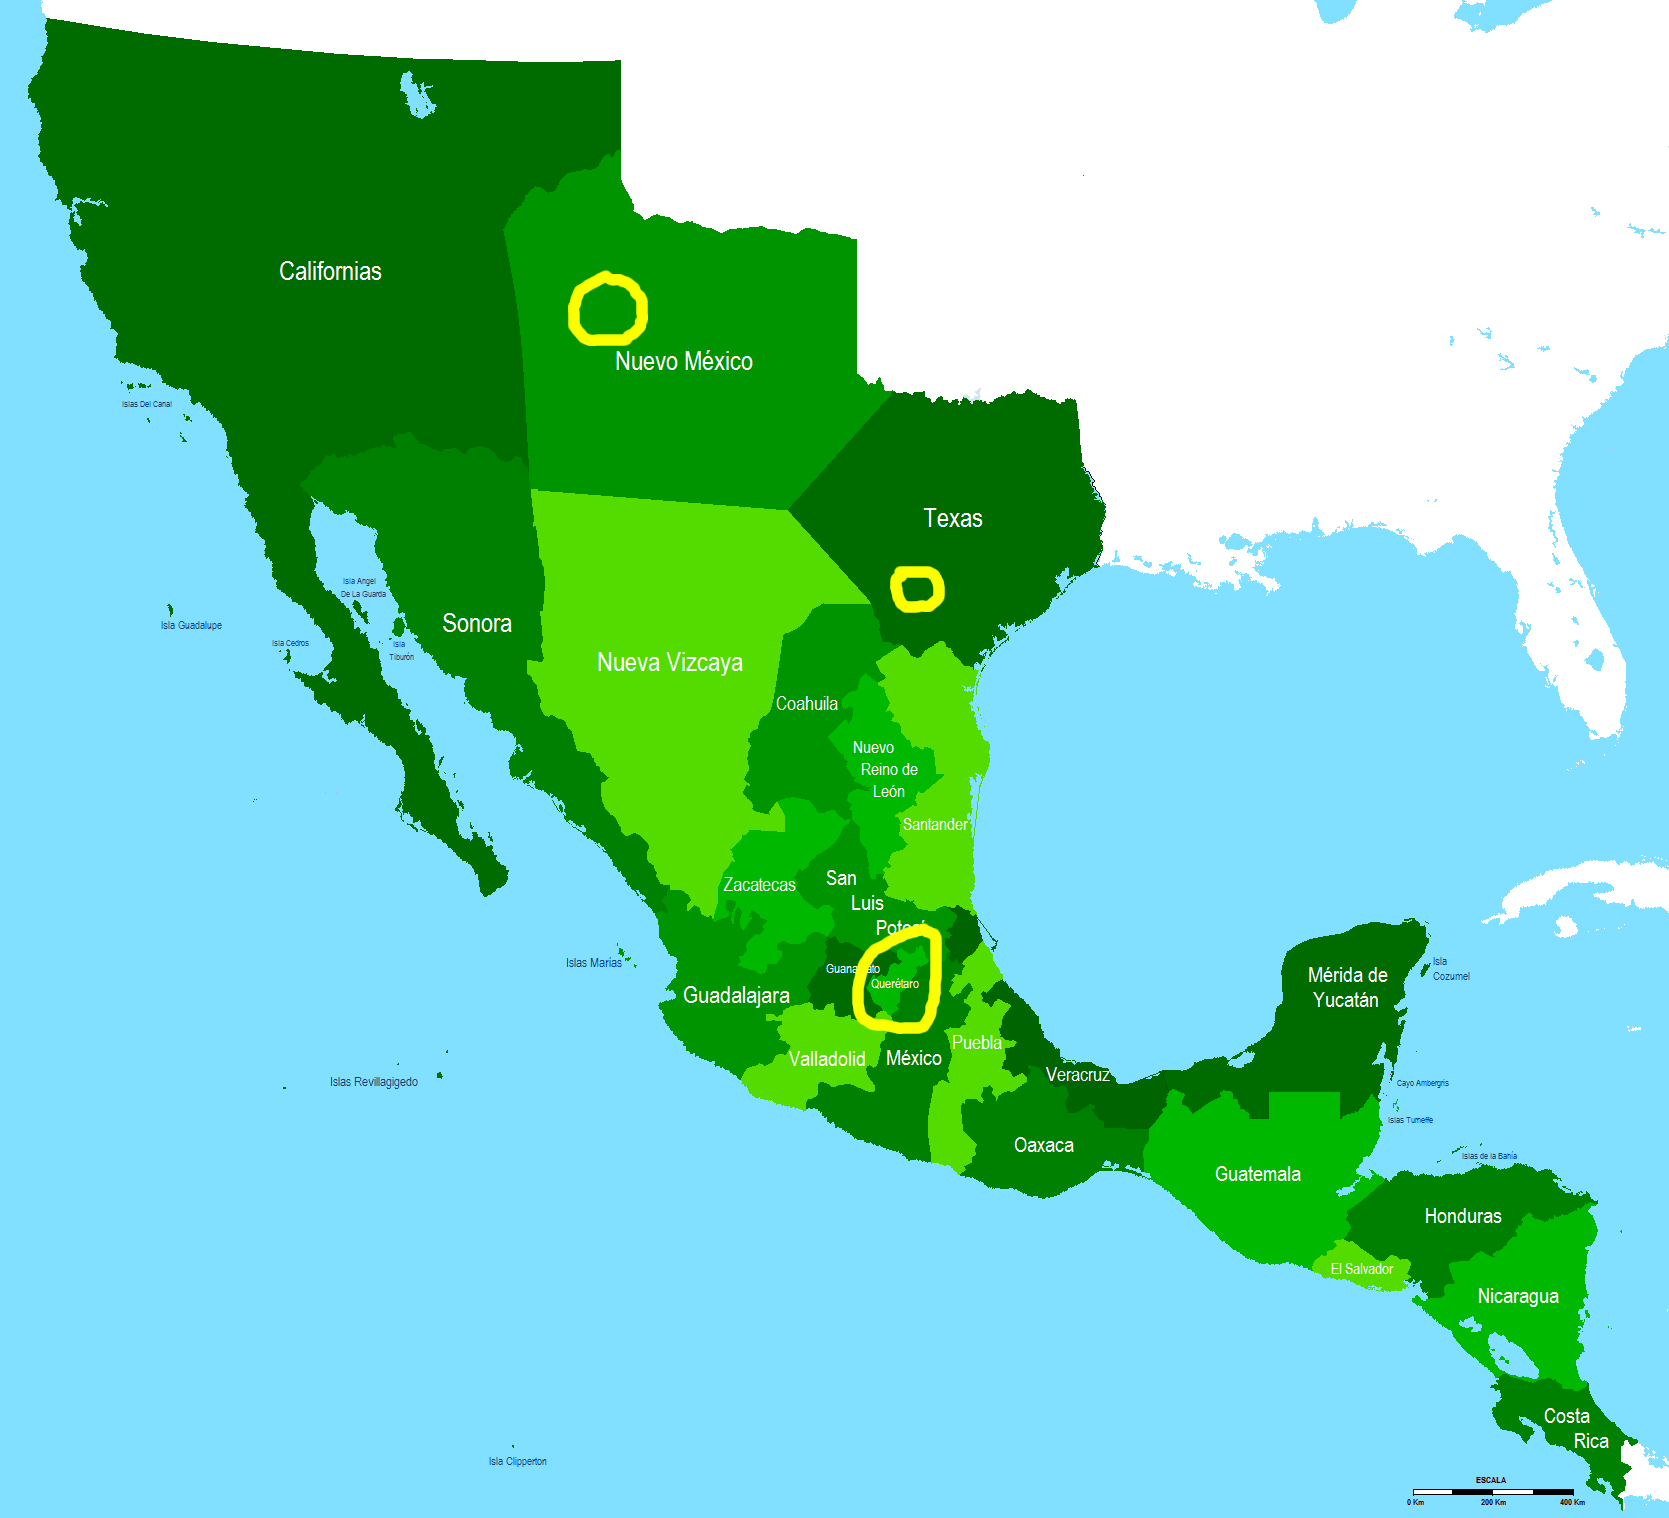 Map of Mexico in 1821, with gorditas